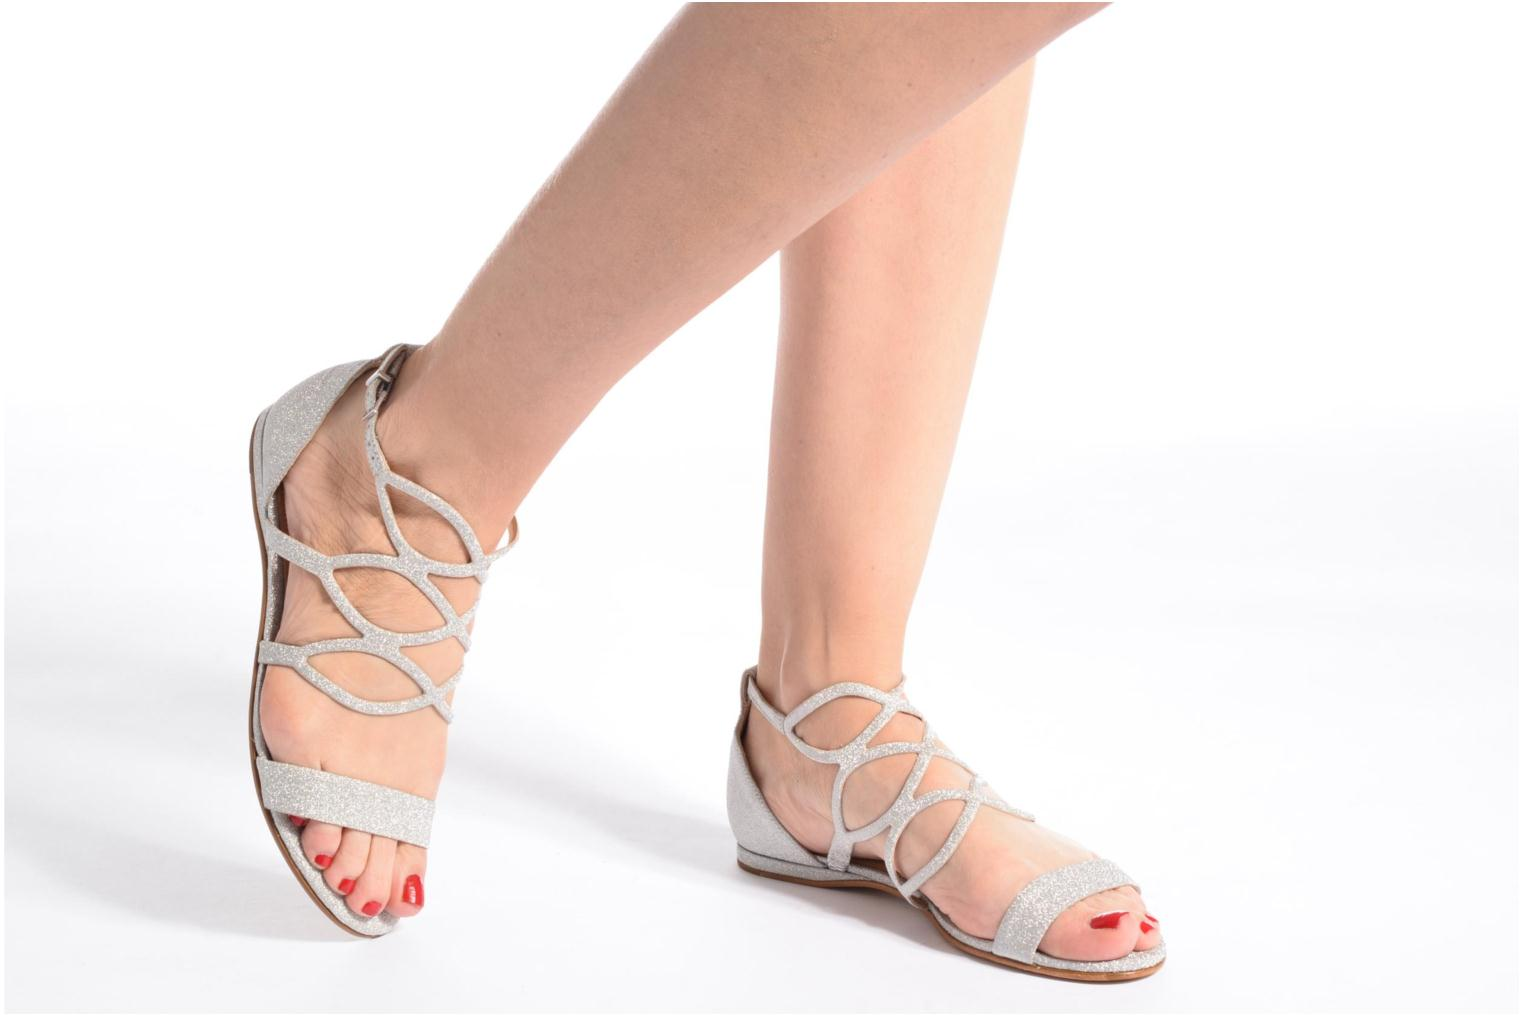 Sandals COSMOPARIS Alinoa/Diam Silver view from underneath / model view